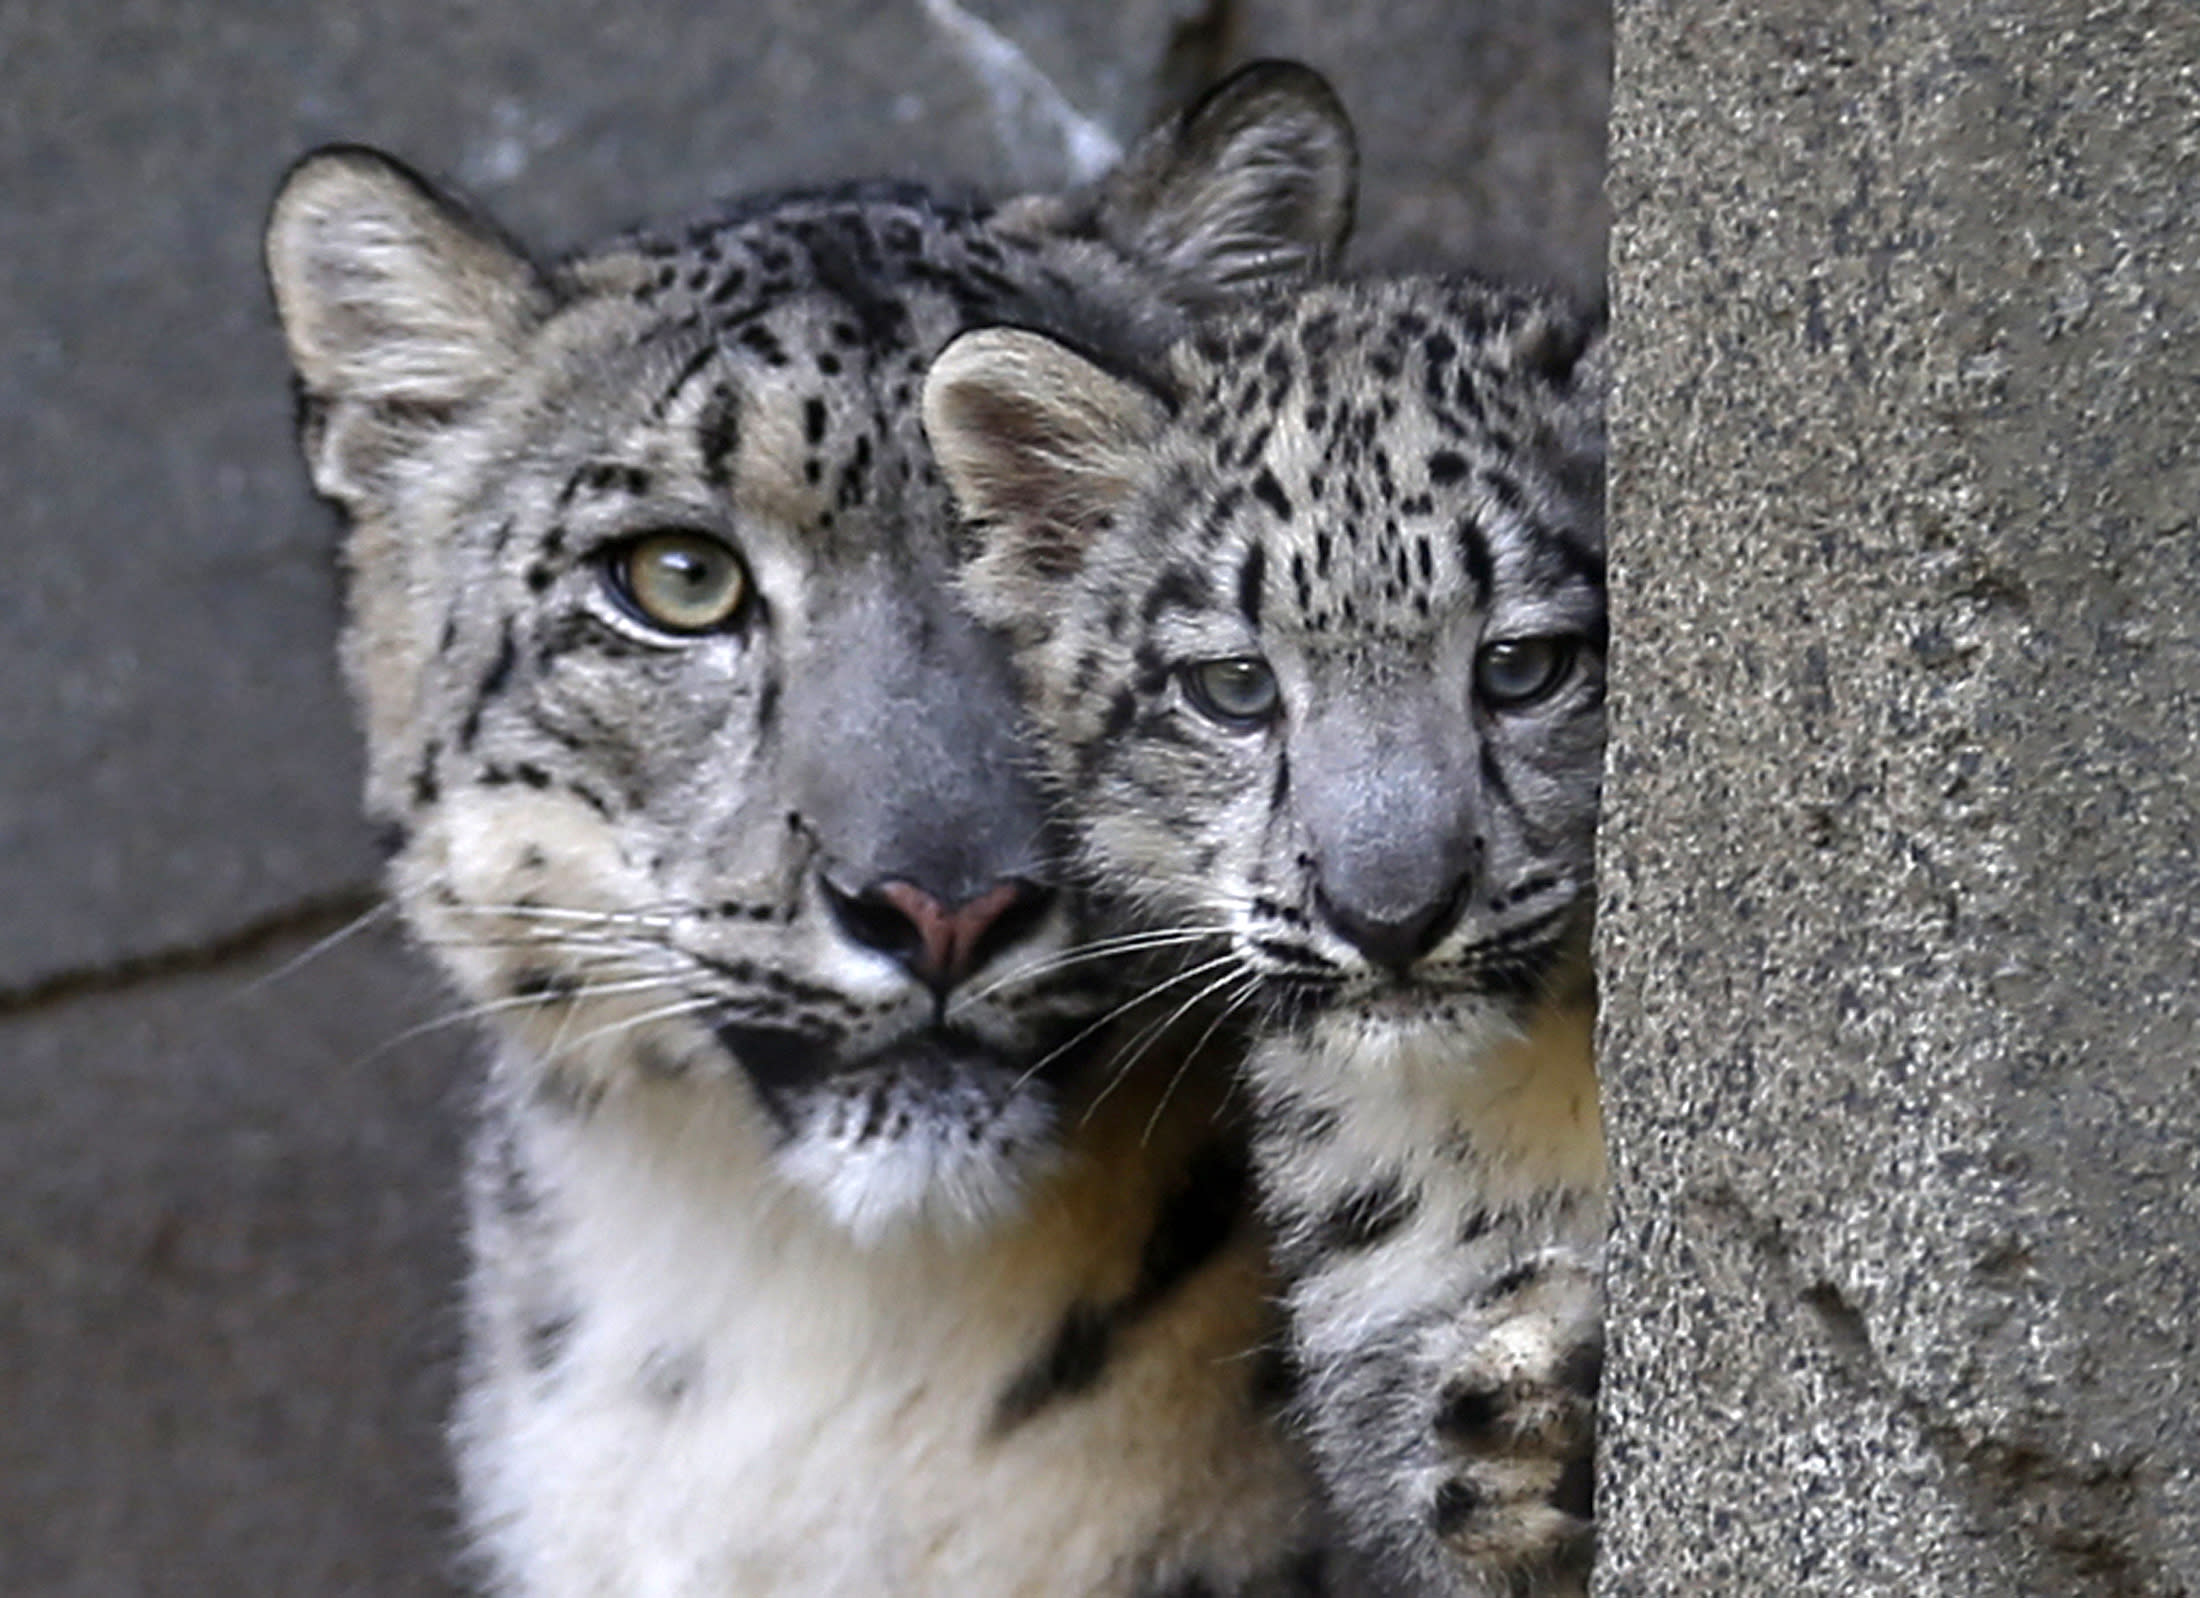 San Diego snow leopard was coughing. He has COVID.